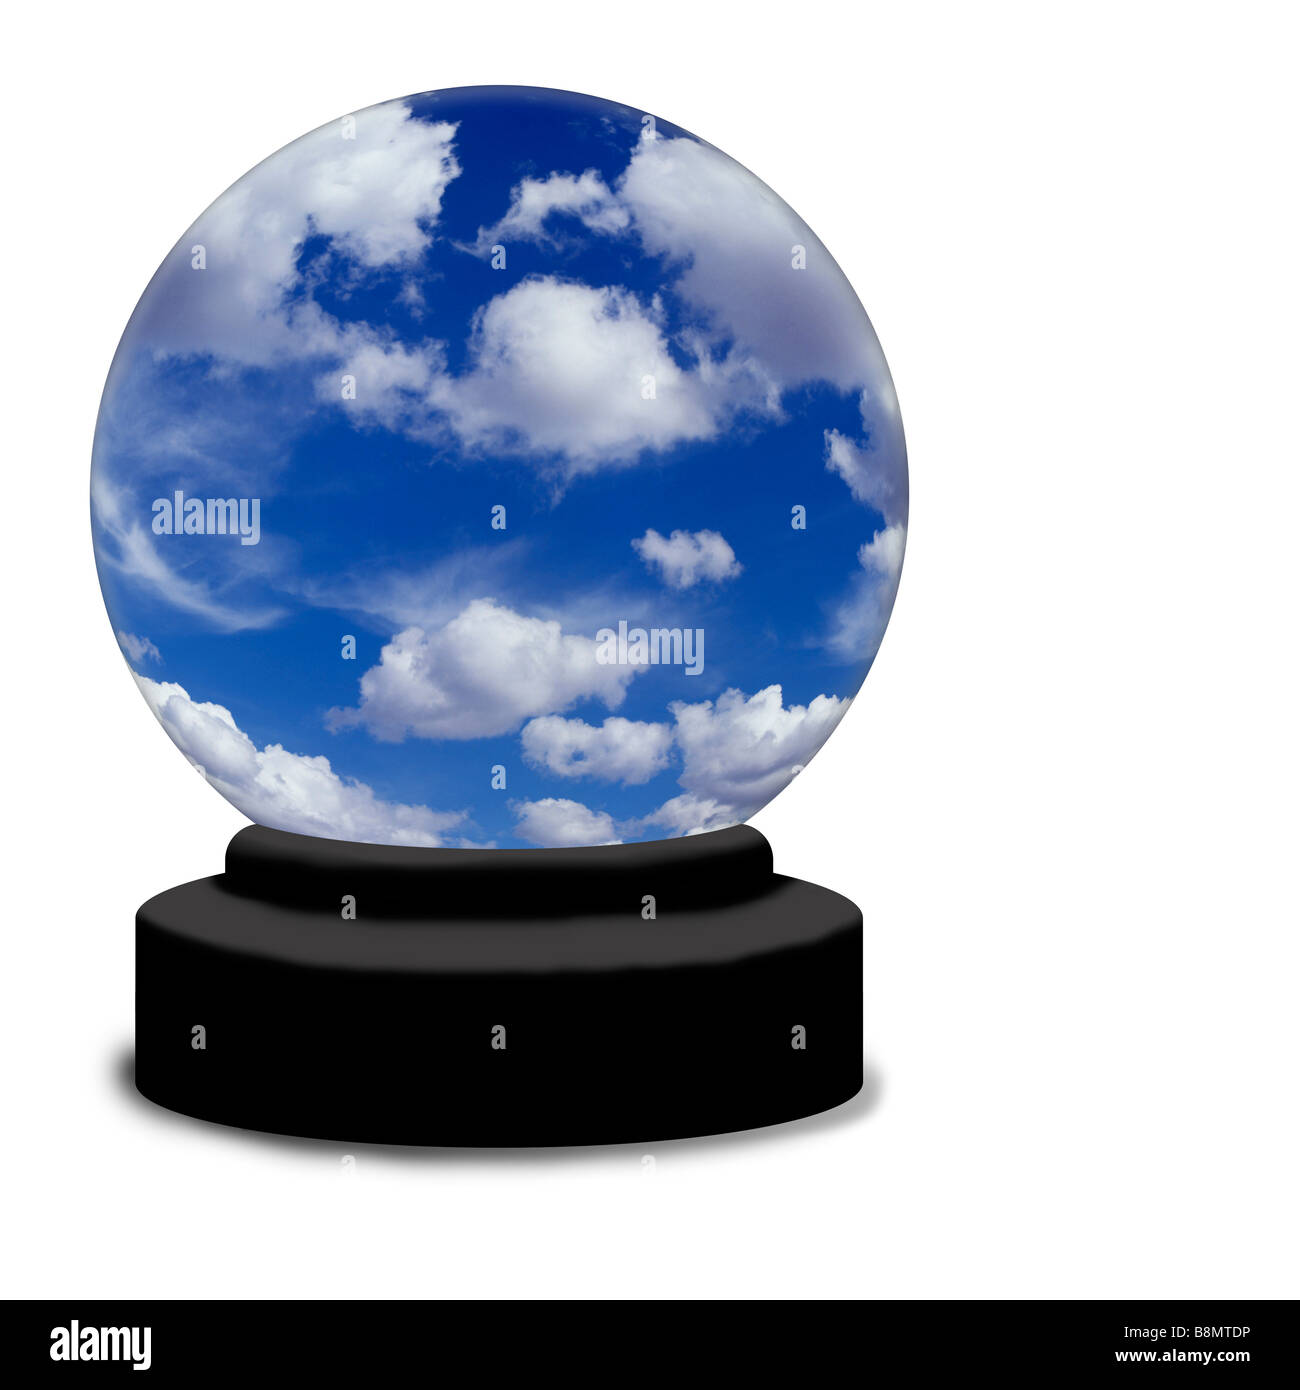 A crystal ball on a white background The globe contains a bright blue summer sky with white fluffy clouds - Stock Image